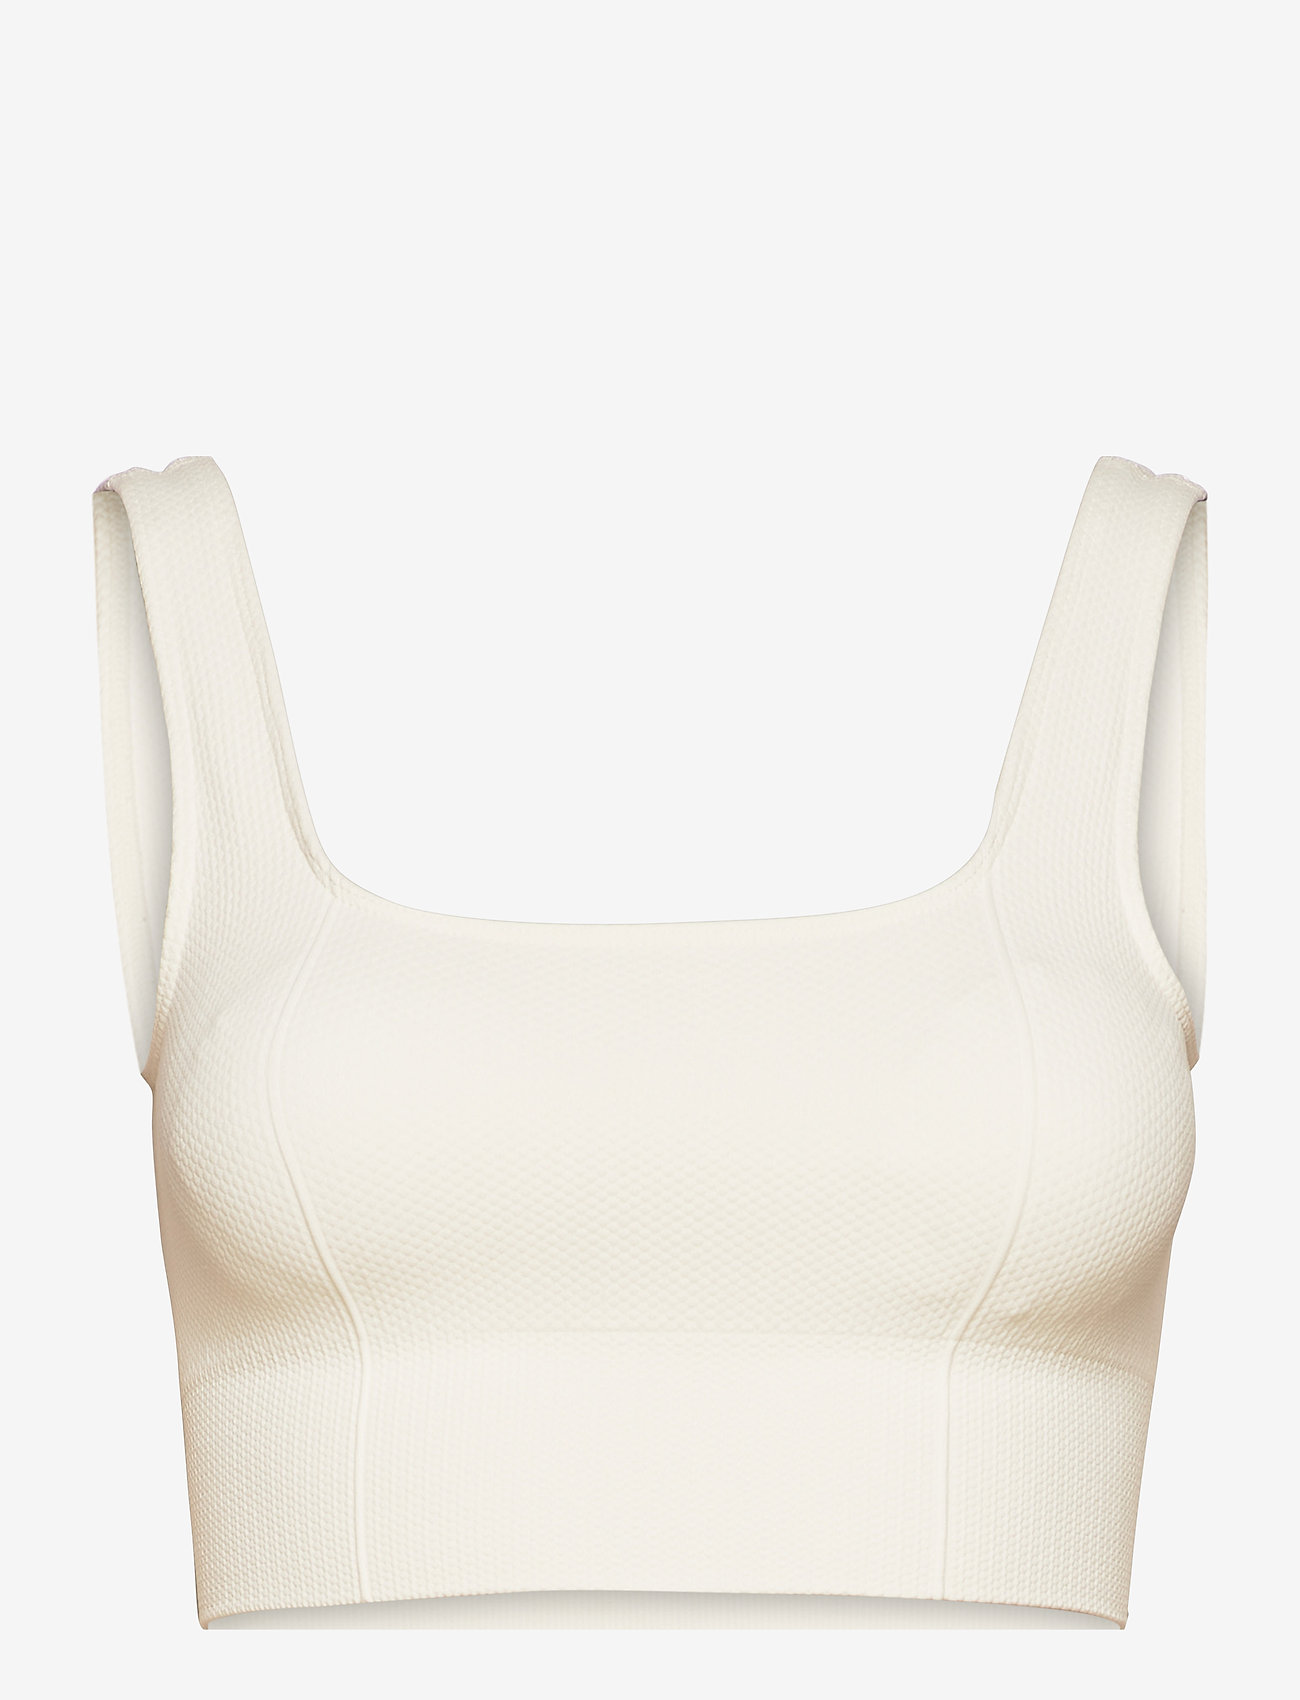 AIM'N - Off-White Luxe Seamless Bra - sport bras: low support - off-white - 0